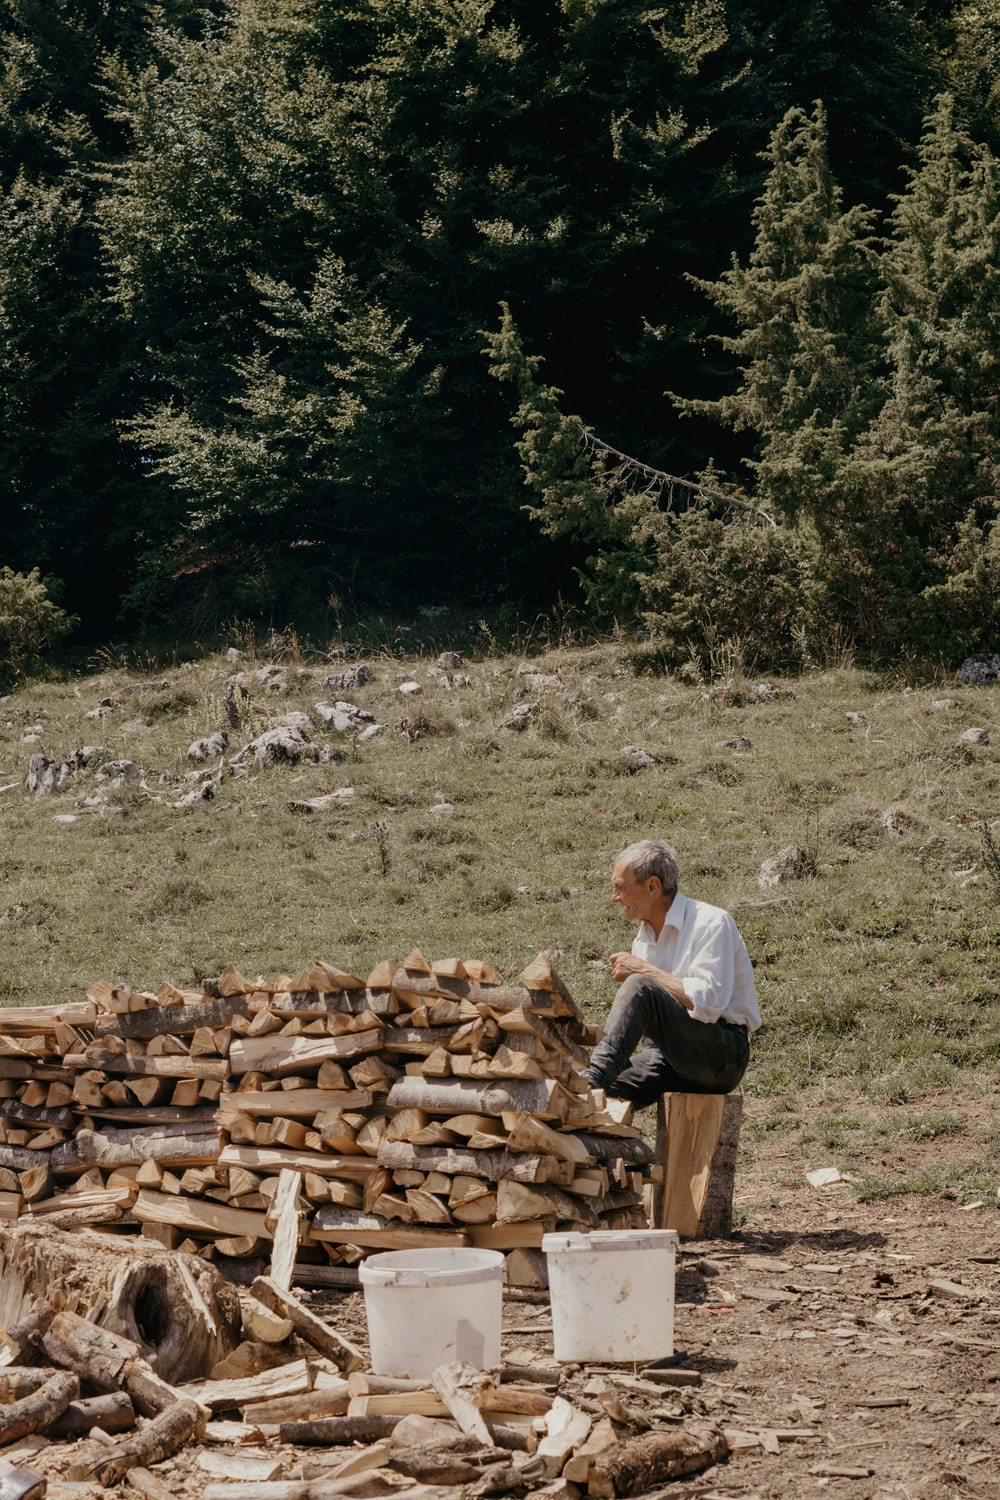 man in white shirt and black shorts standing beside brown wood logs